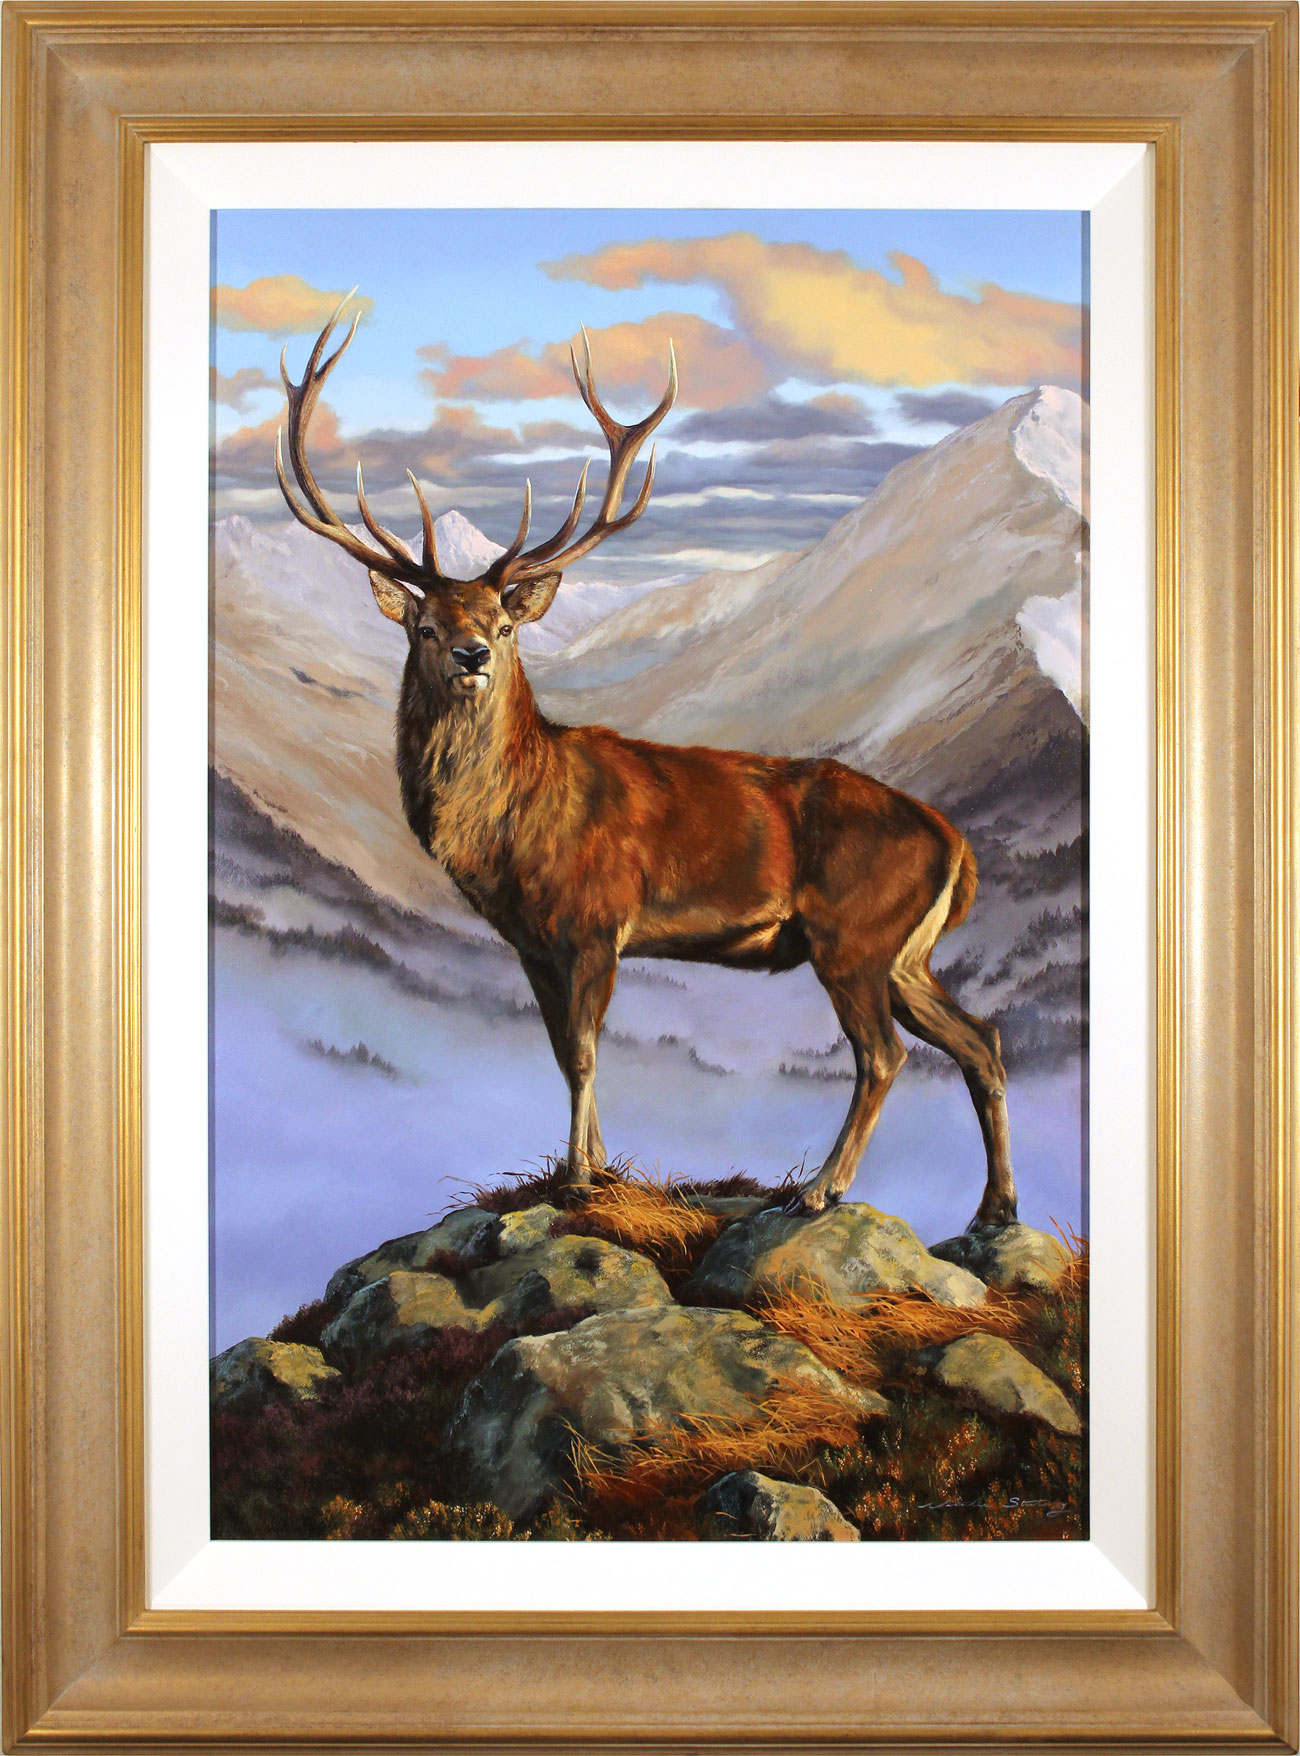 Natalie Stutely, Original oil painting on panel, Red Stag with Beinn Eighe, Torridon, click to enlarge